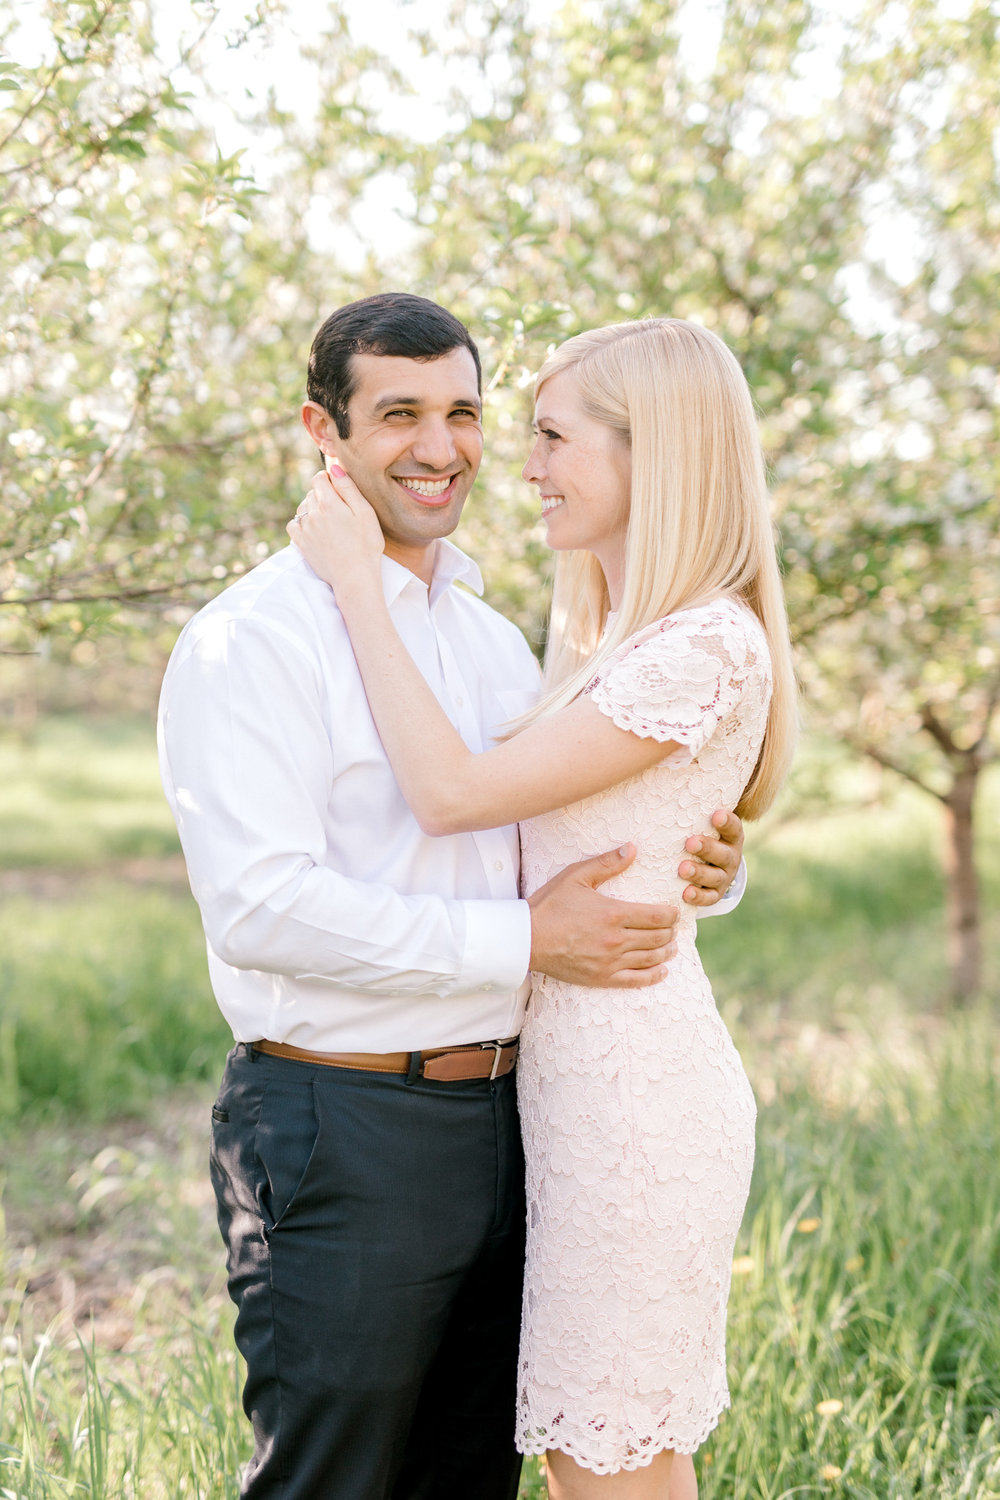 A sweet spring engagement session at the orchard | laurenda marie photography | west michigan weddings | west michigan engagement